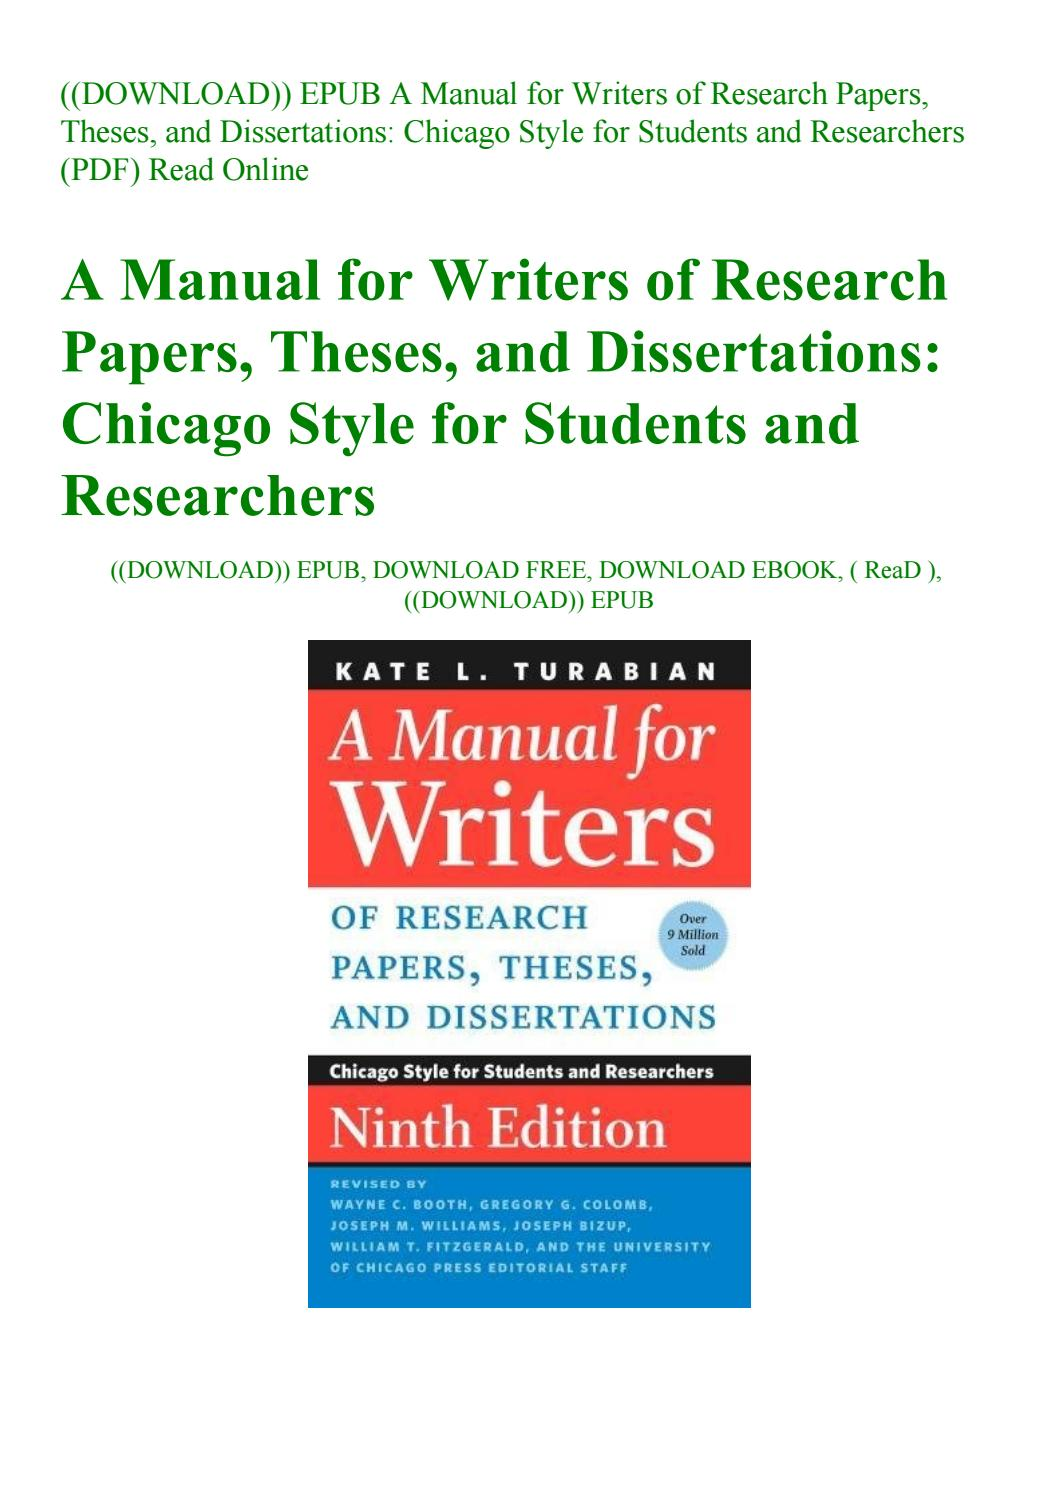 026 Manual For Writers Of Research Papers Theses And Dissertations Turabian Paper Page 1 Amazing A Pdf Full